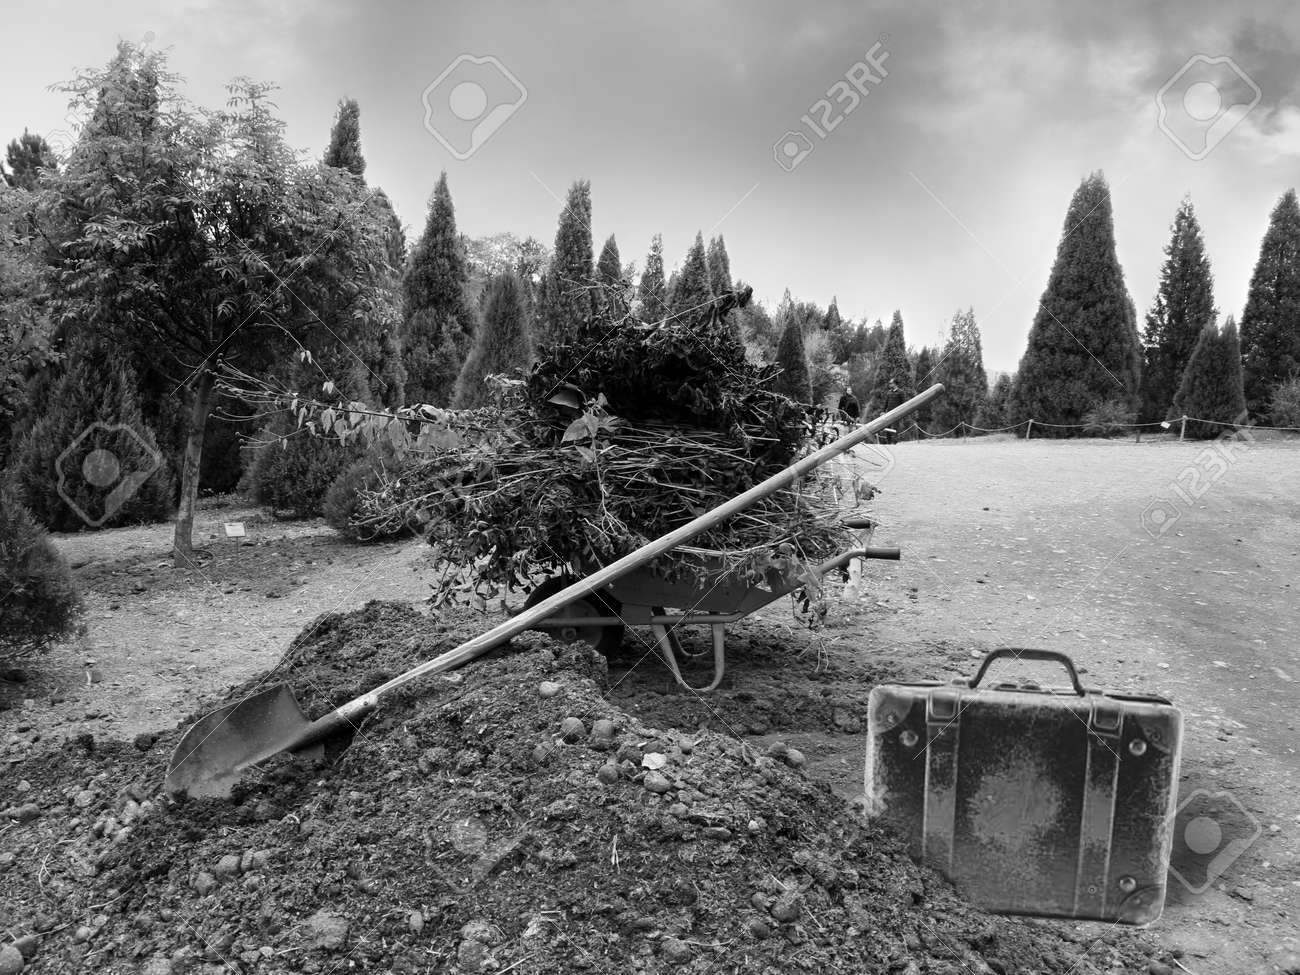 Wheelbarrow with garden waste on the land at a park with shovel